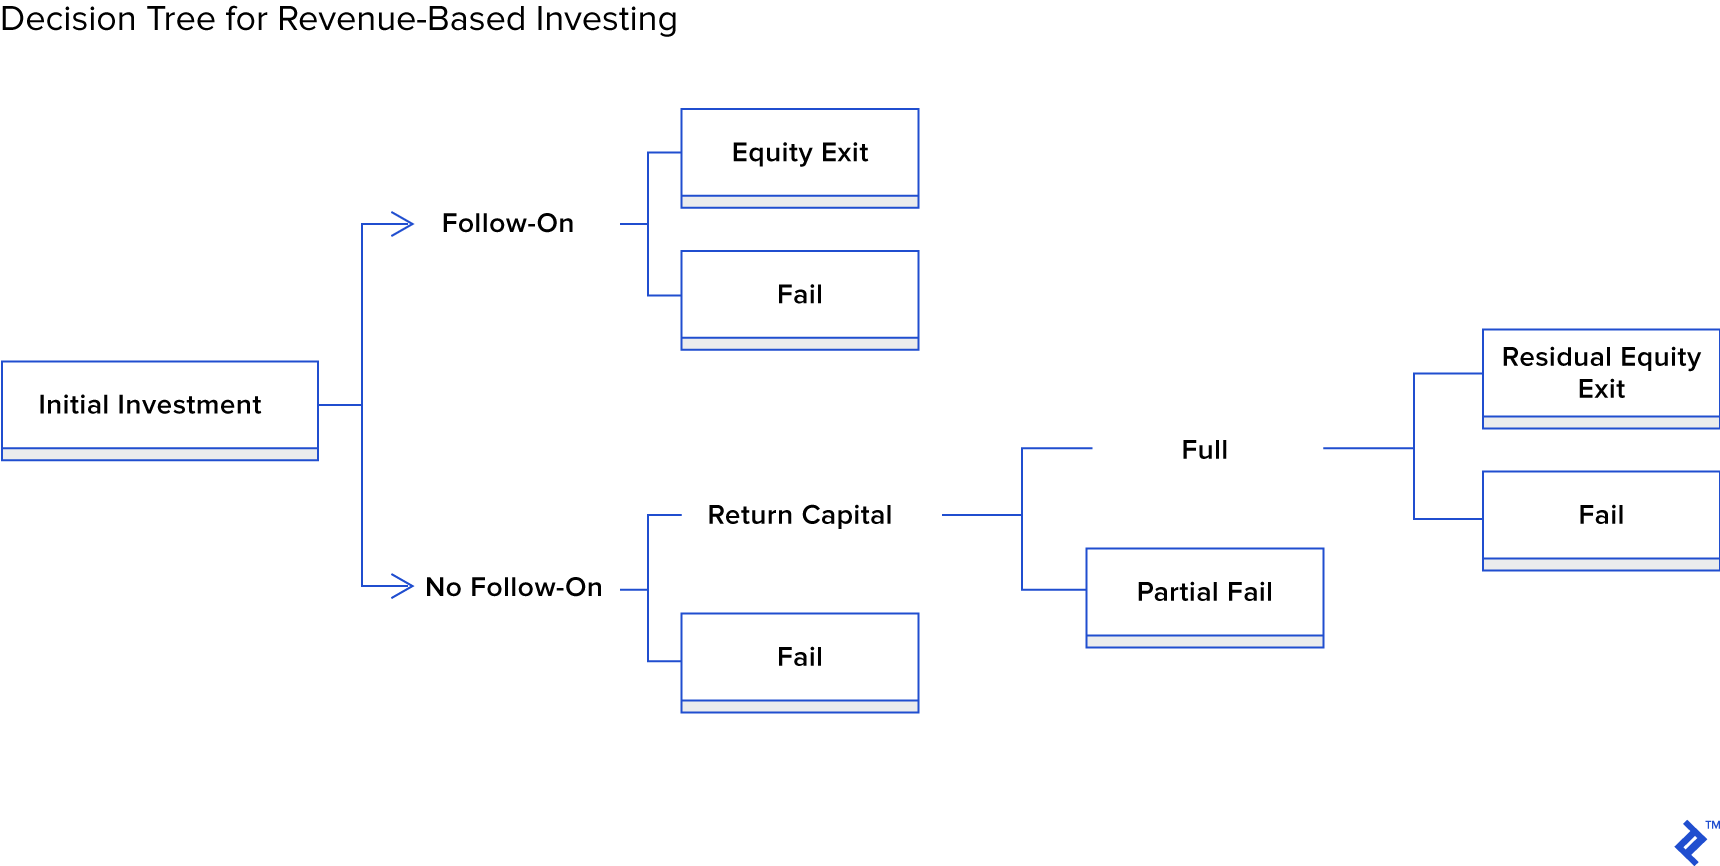 Diagram of a decision tree for revenue-based investing.